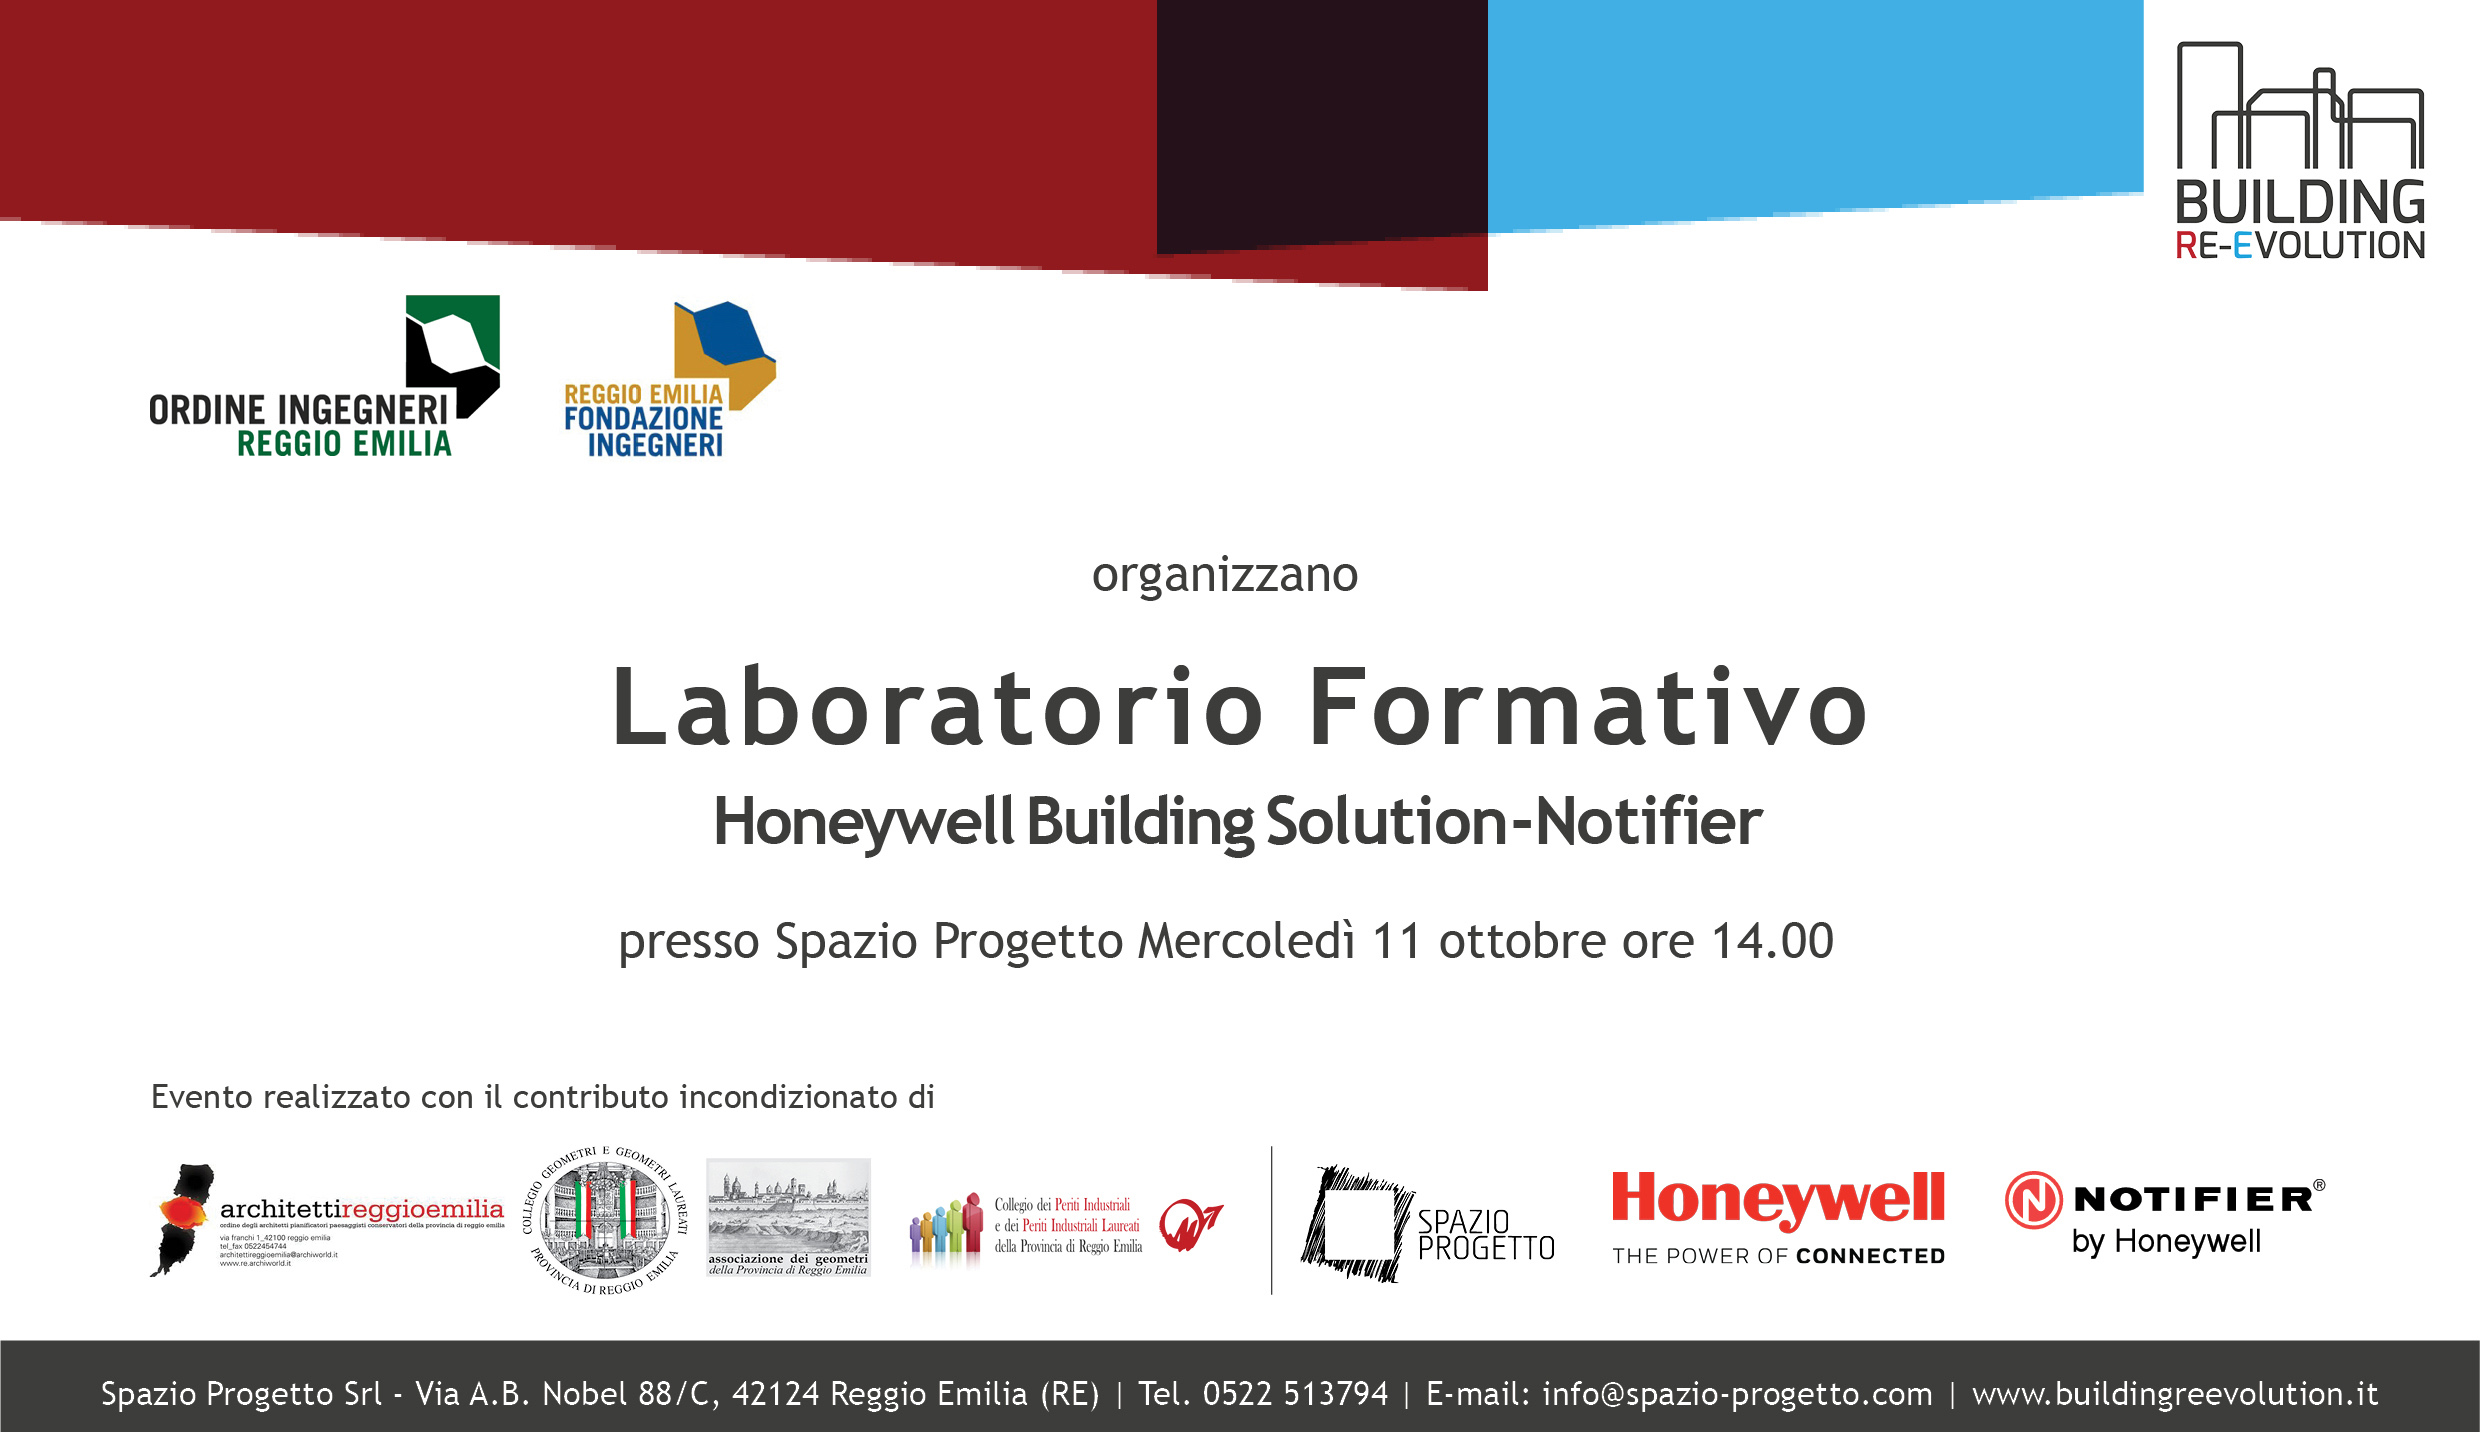 LABORATORIO FORMATIVO, HONEYWELL BUILDING SOLUTION – NOTIFIER